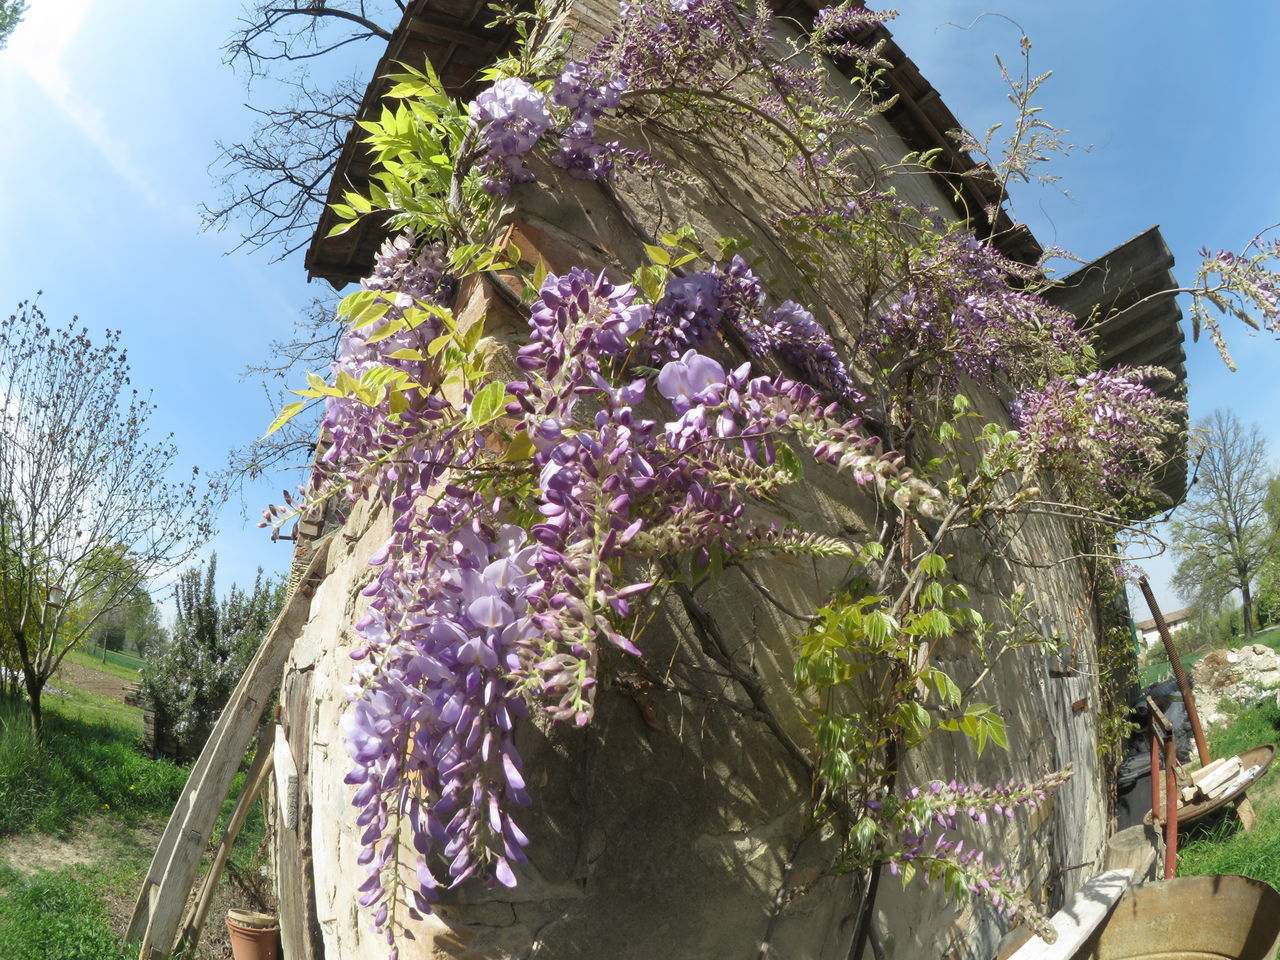 Growth Tree Sky Nature Plant Flower Sunlight Outdoors Beauty In Nature Day No People Close-up Fragility Freshness Glicine Glicineinfiore Fisheye